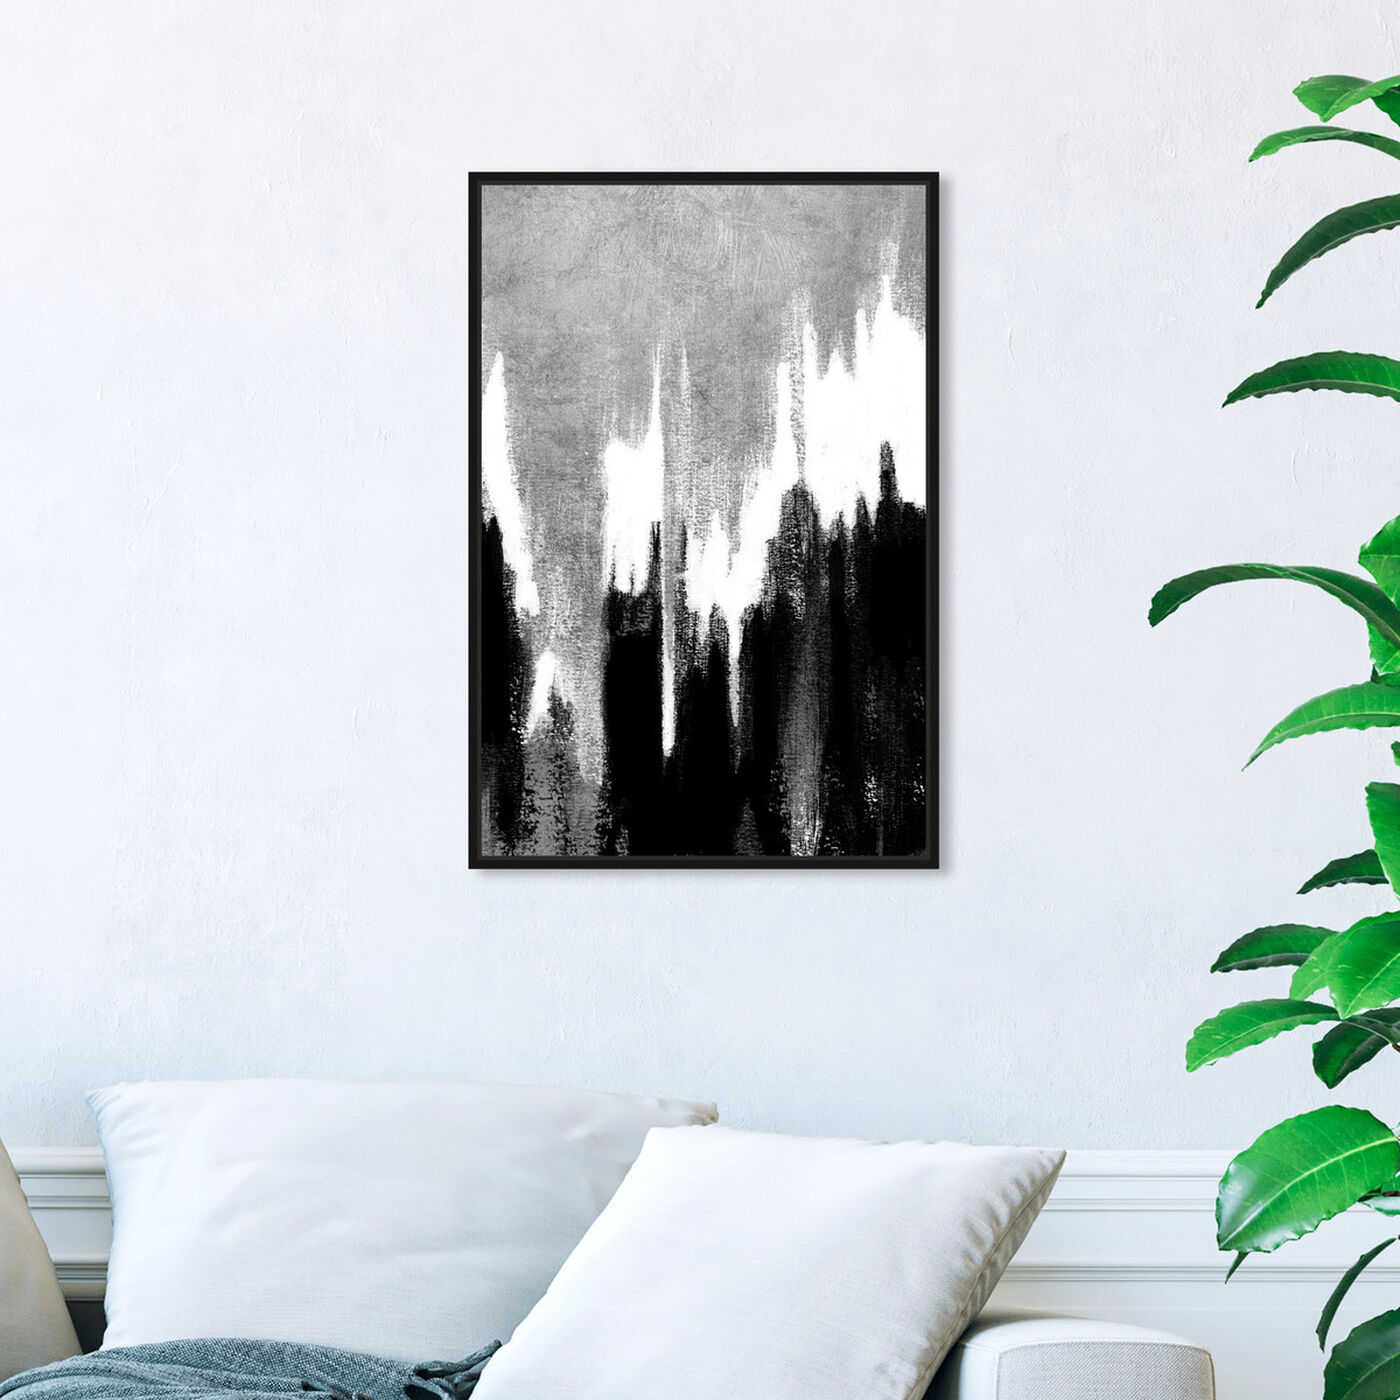 Hanging view of Adore Adore Silver featuring abstract and paint art.